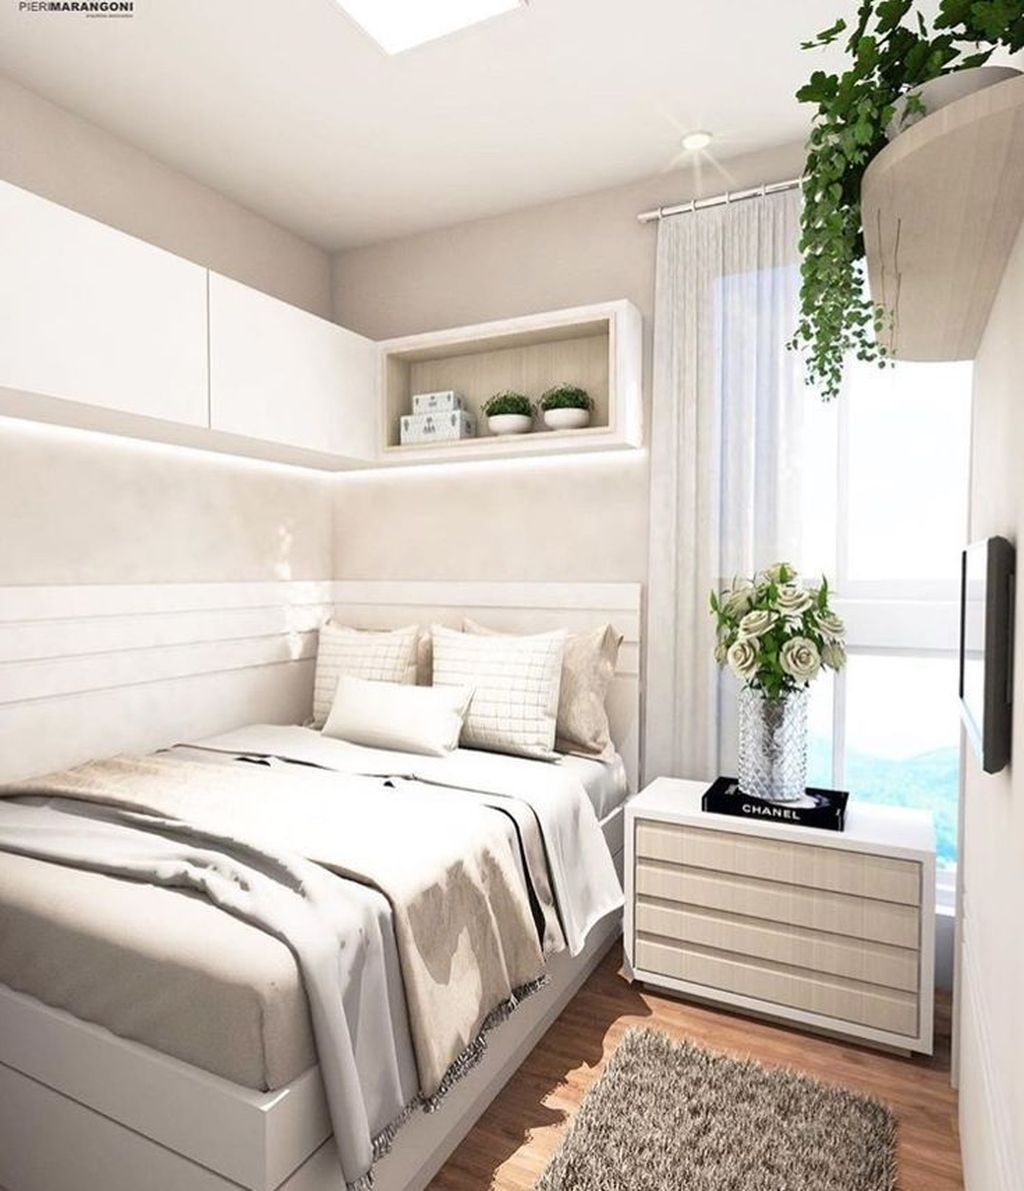 33 Admirable Small Bedroom Decor Ideas You Never Seen Before Em